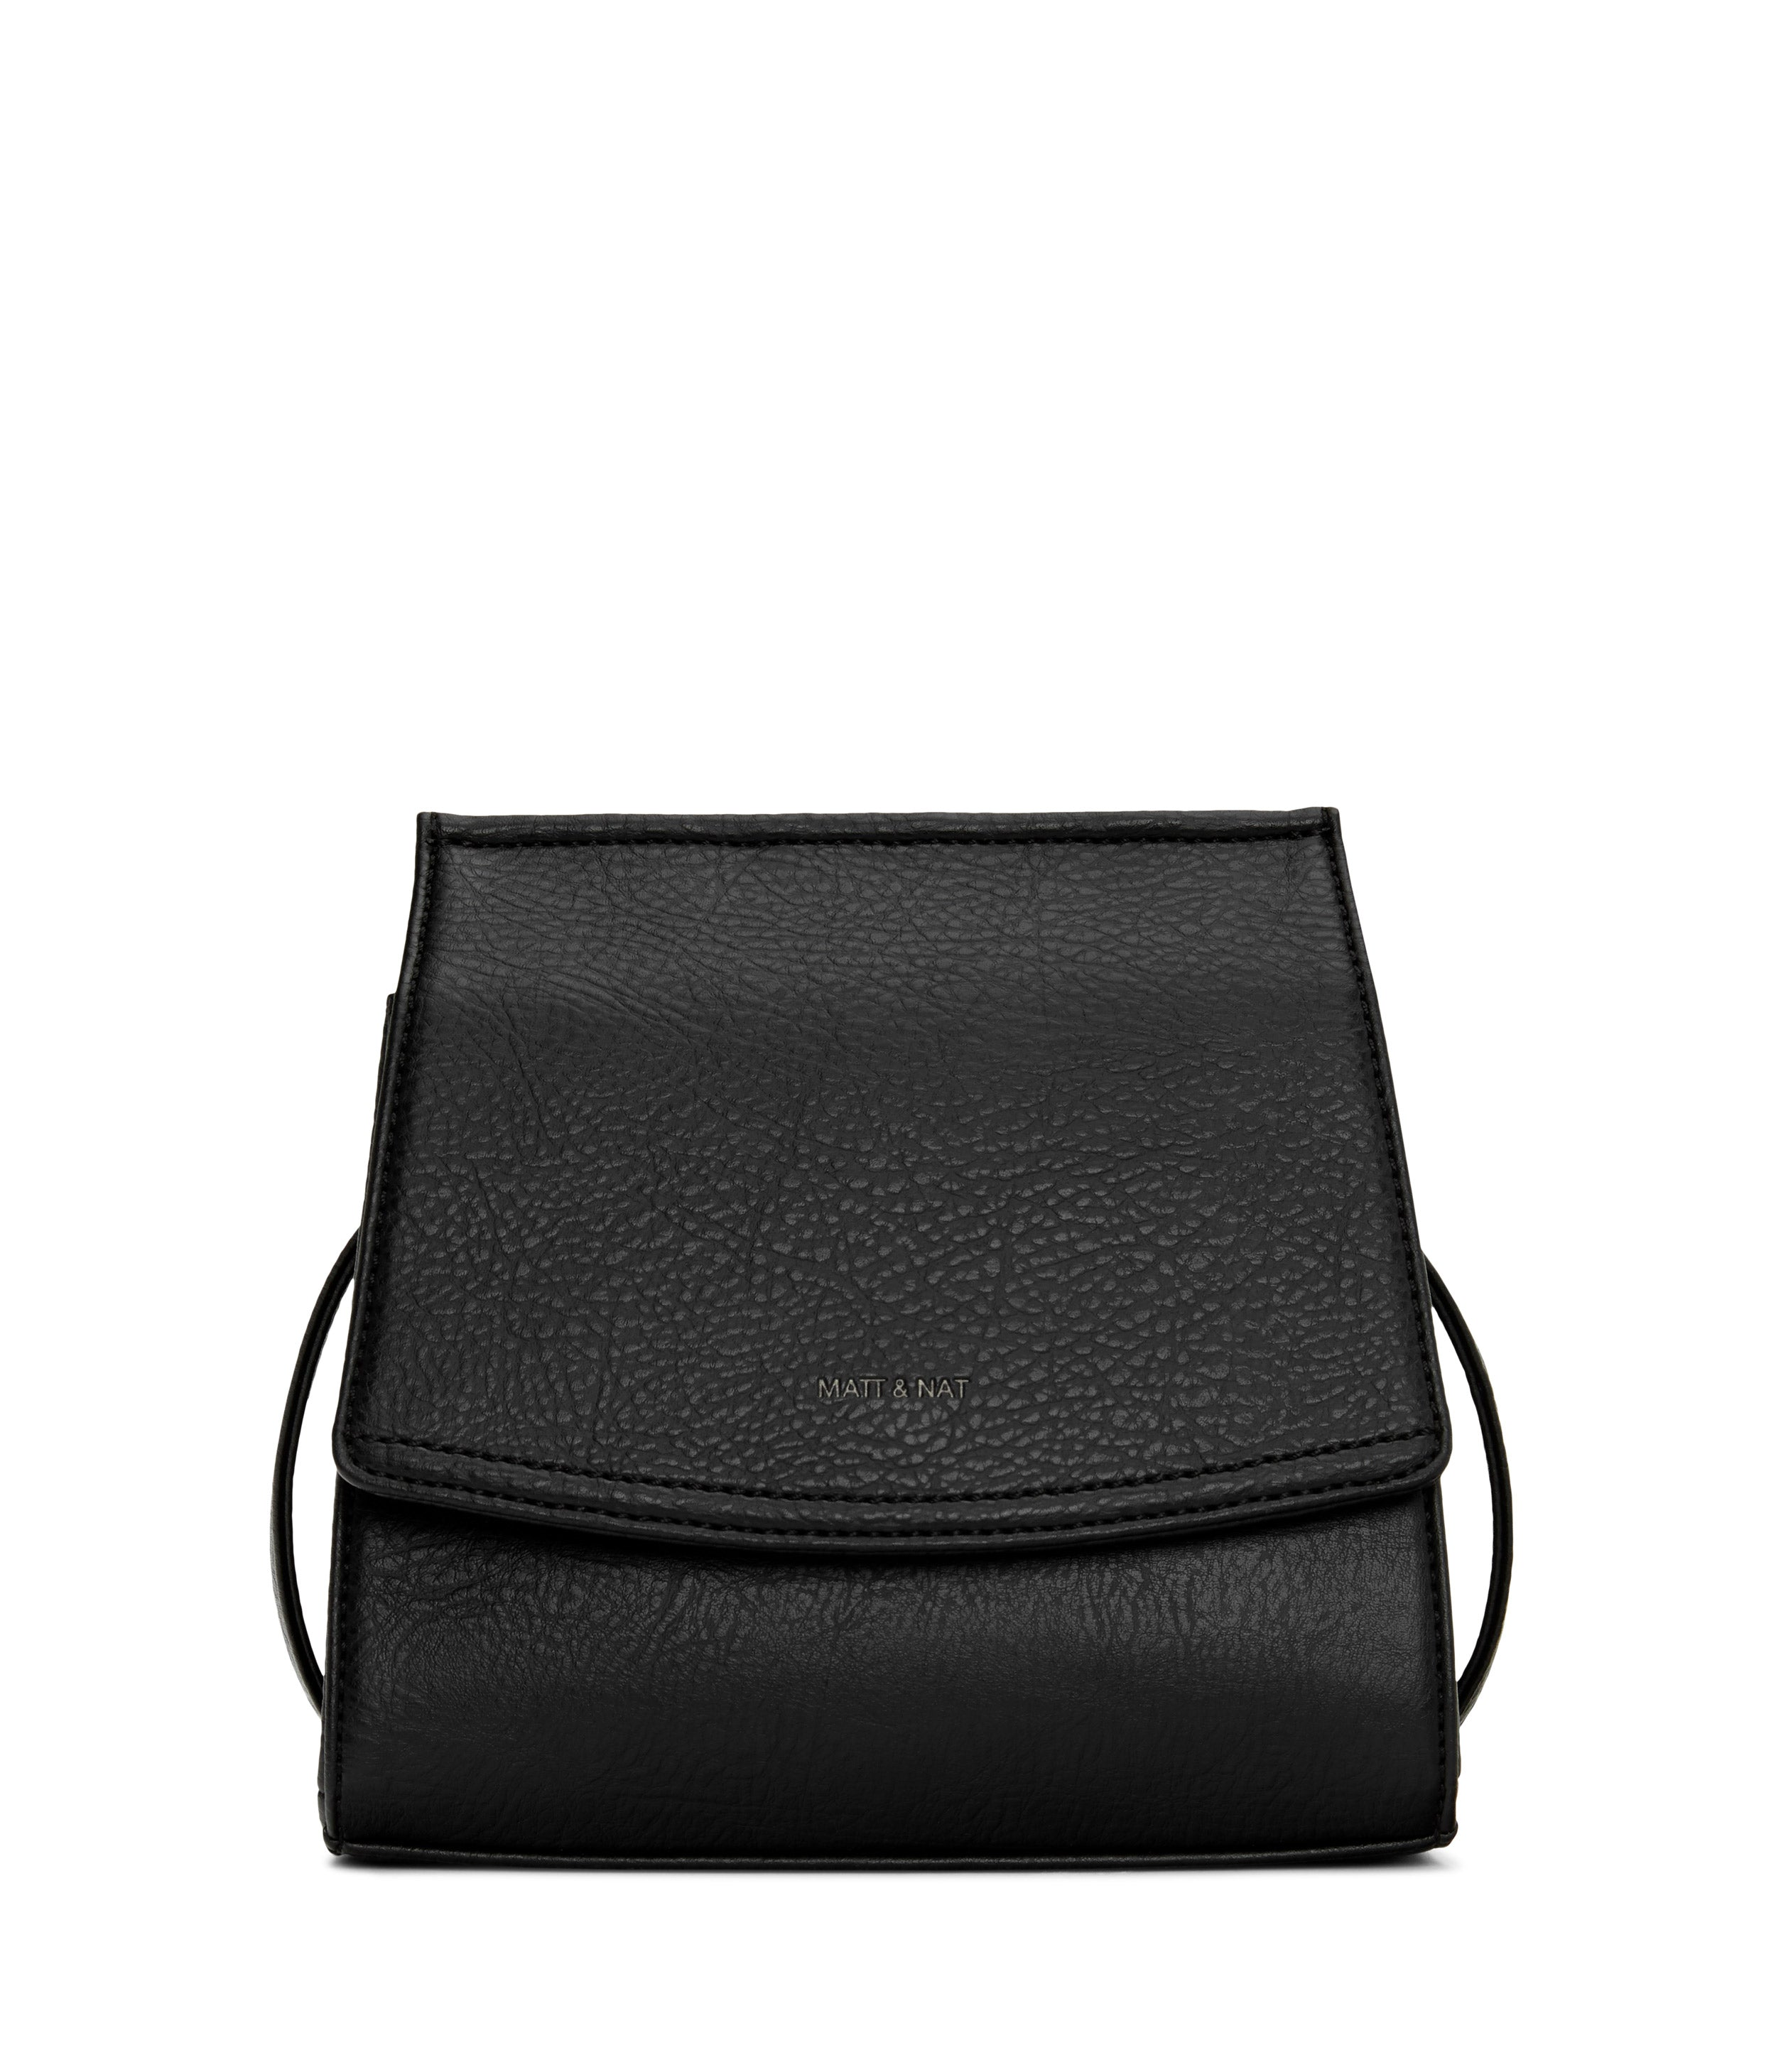 MATT & NAT HAND BAGS MATT & NAT ERIKA CROSSBODY BAG - BLACK